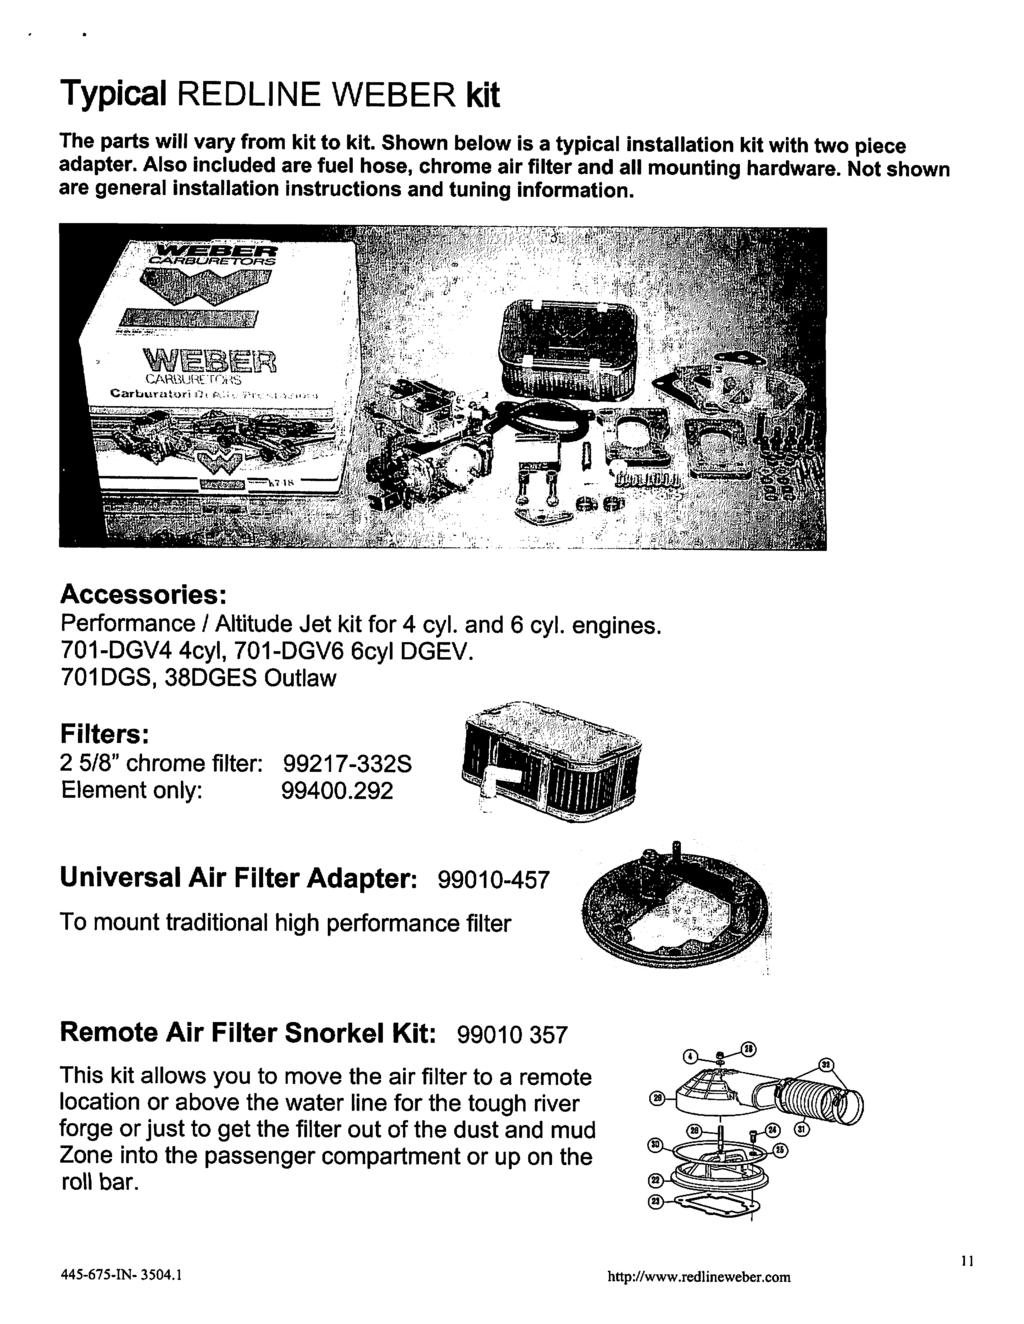 Read Understand All Steps Of These Instructions Before Beginning Free Electrical Wiring Diagrams Cycle Electric Dgv 5000 Inc Typical Redline Weber Kit The Parts Will Vary From To Shown Below Is